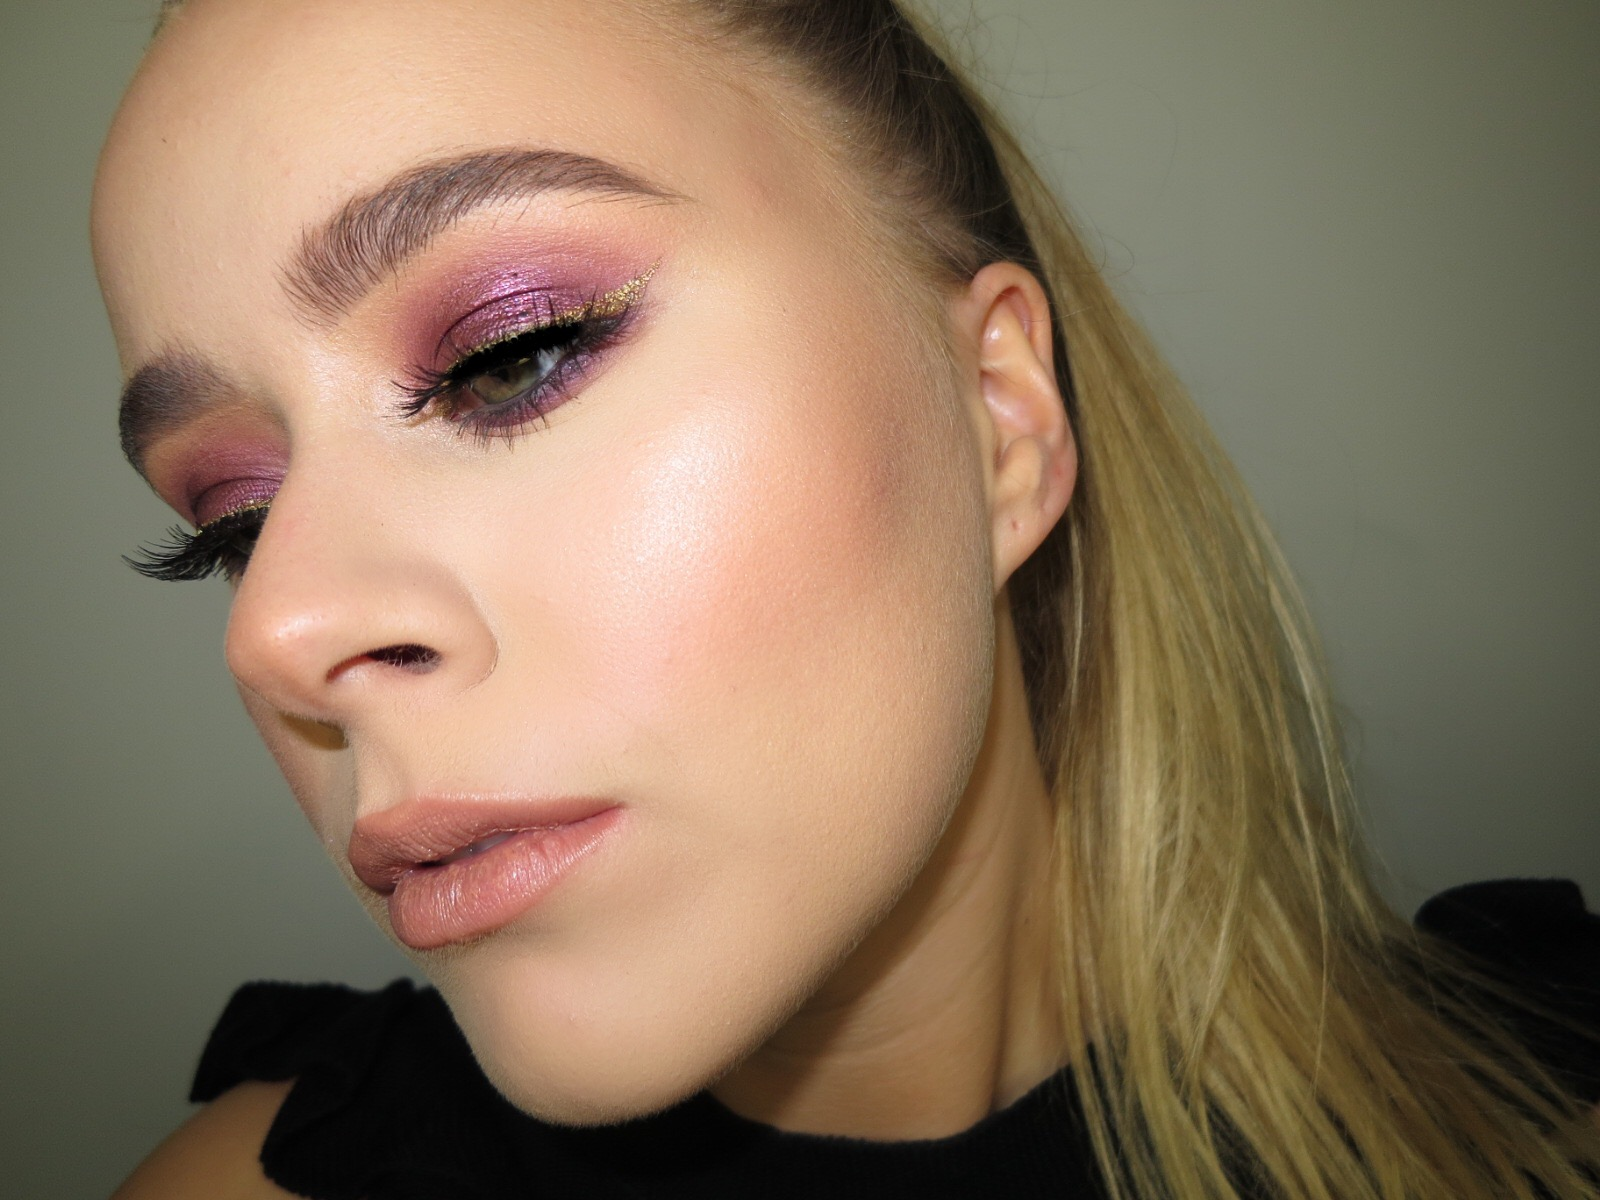 PURPLE & GOLD MAKEUP LOOK